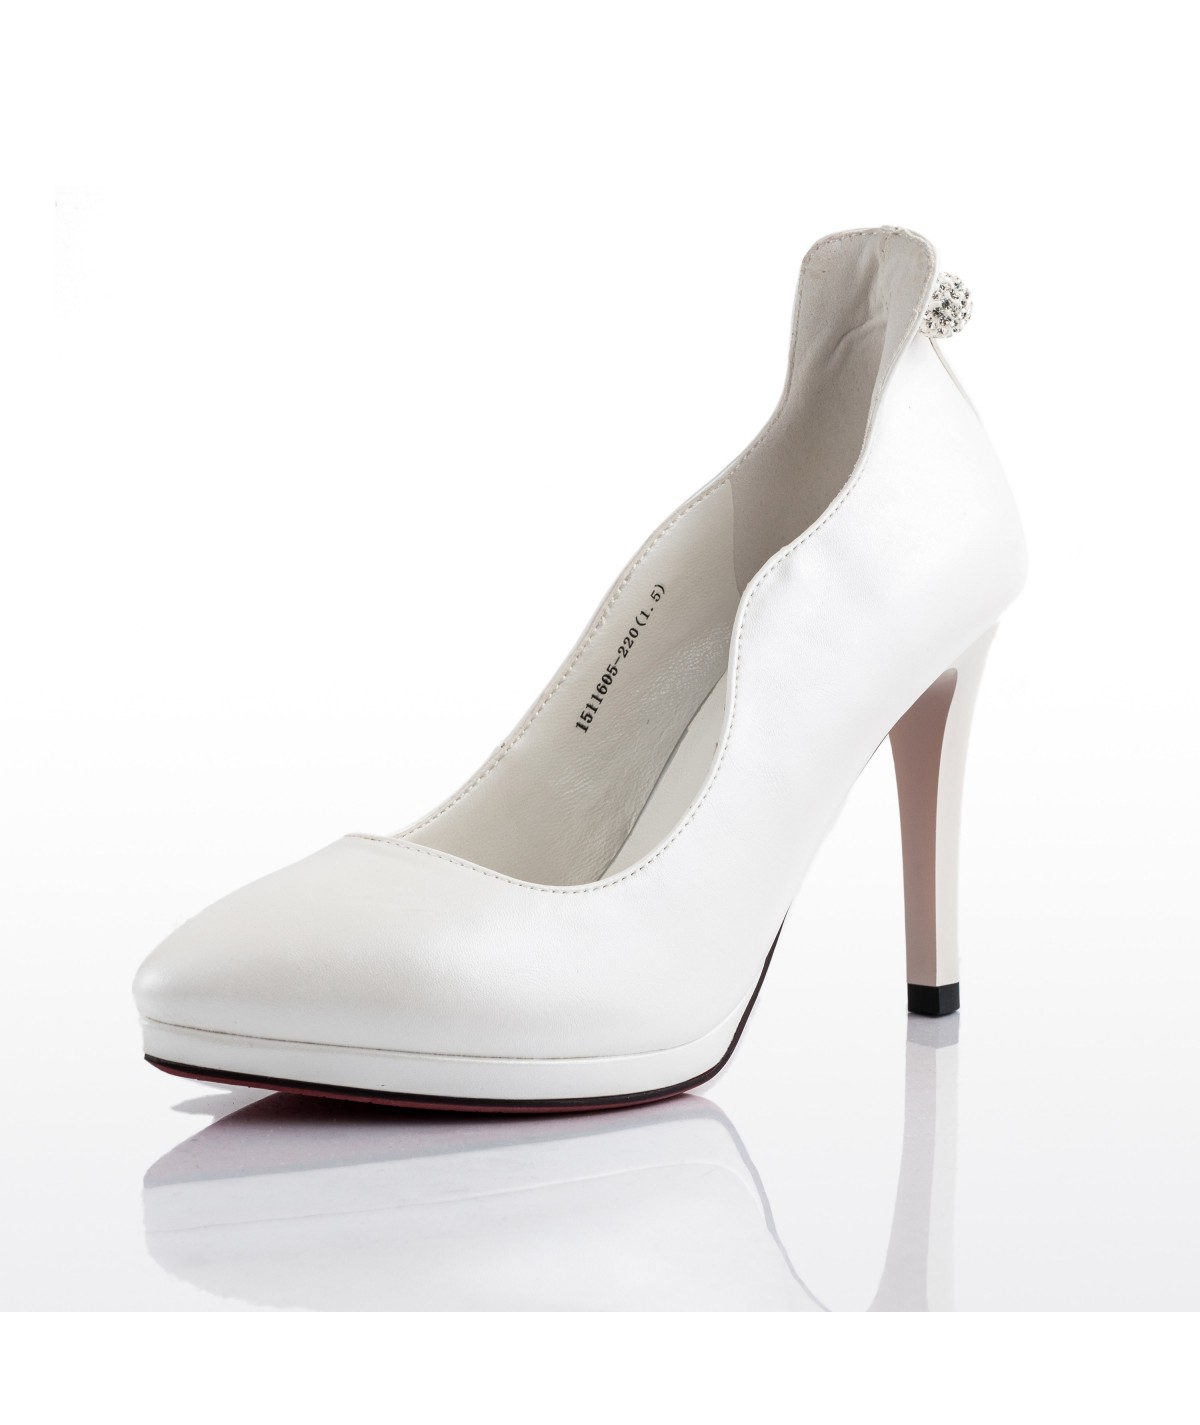 Starina High Heel Wedding & Bridal Shoes